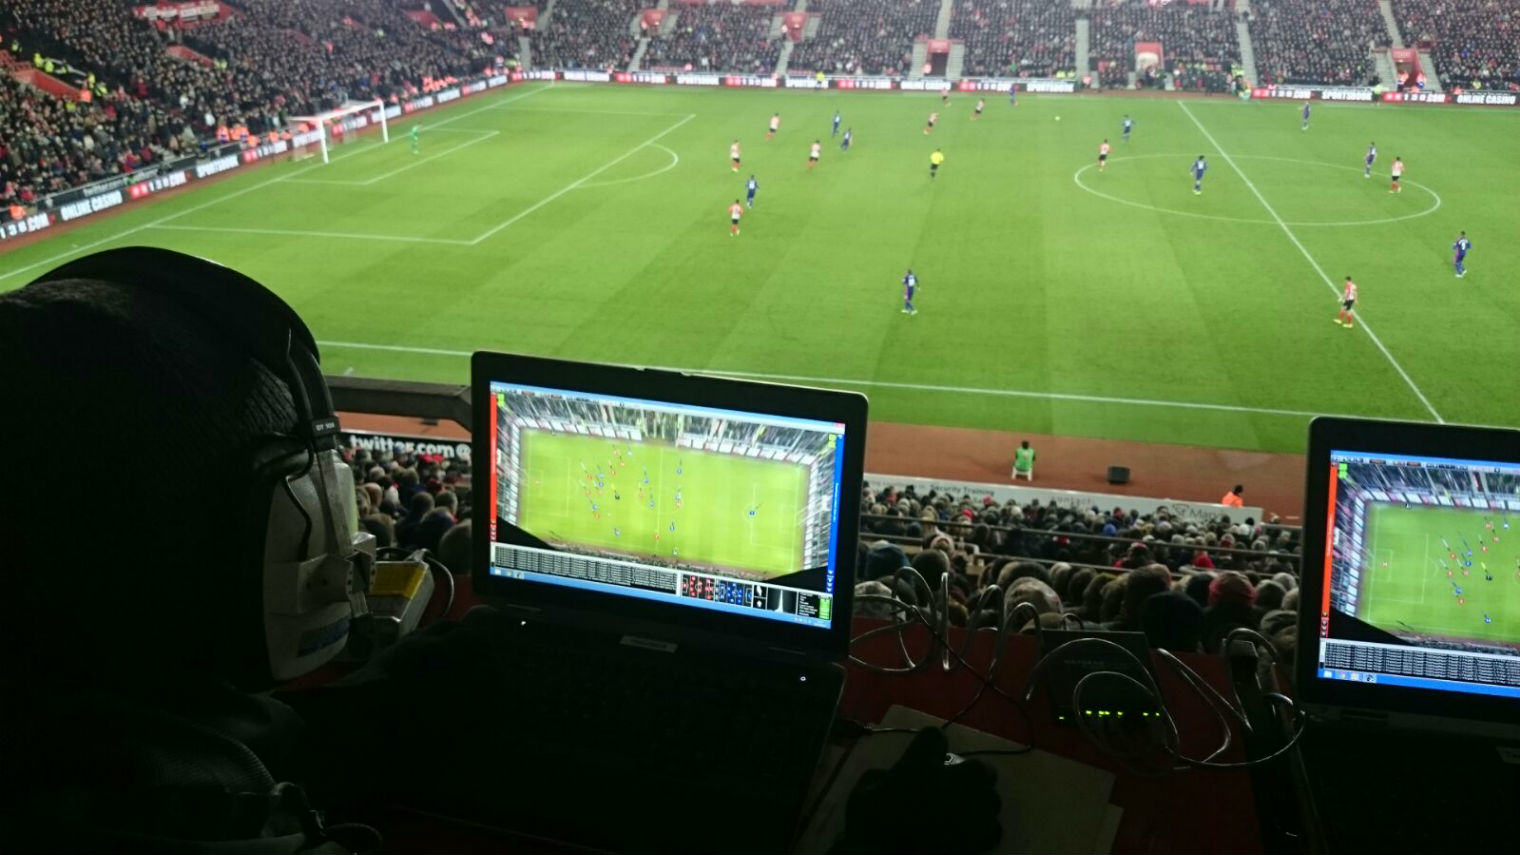 UNILAD xboxwe5 Heres What The Guy With An Xbox Controller Was Doing At The Newcastle United Game